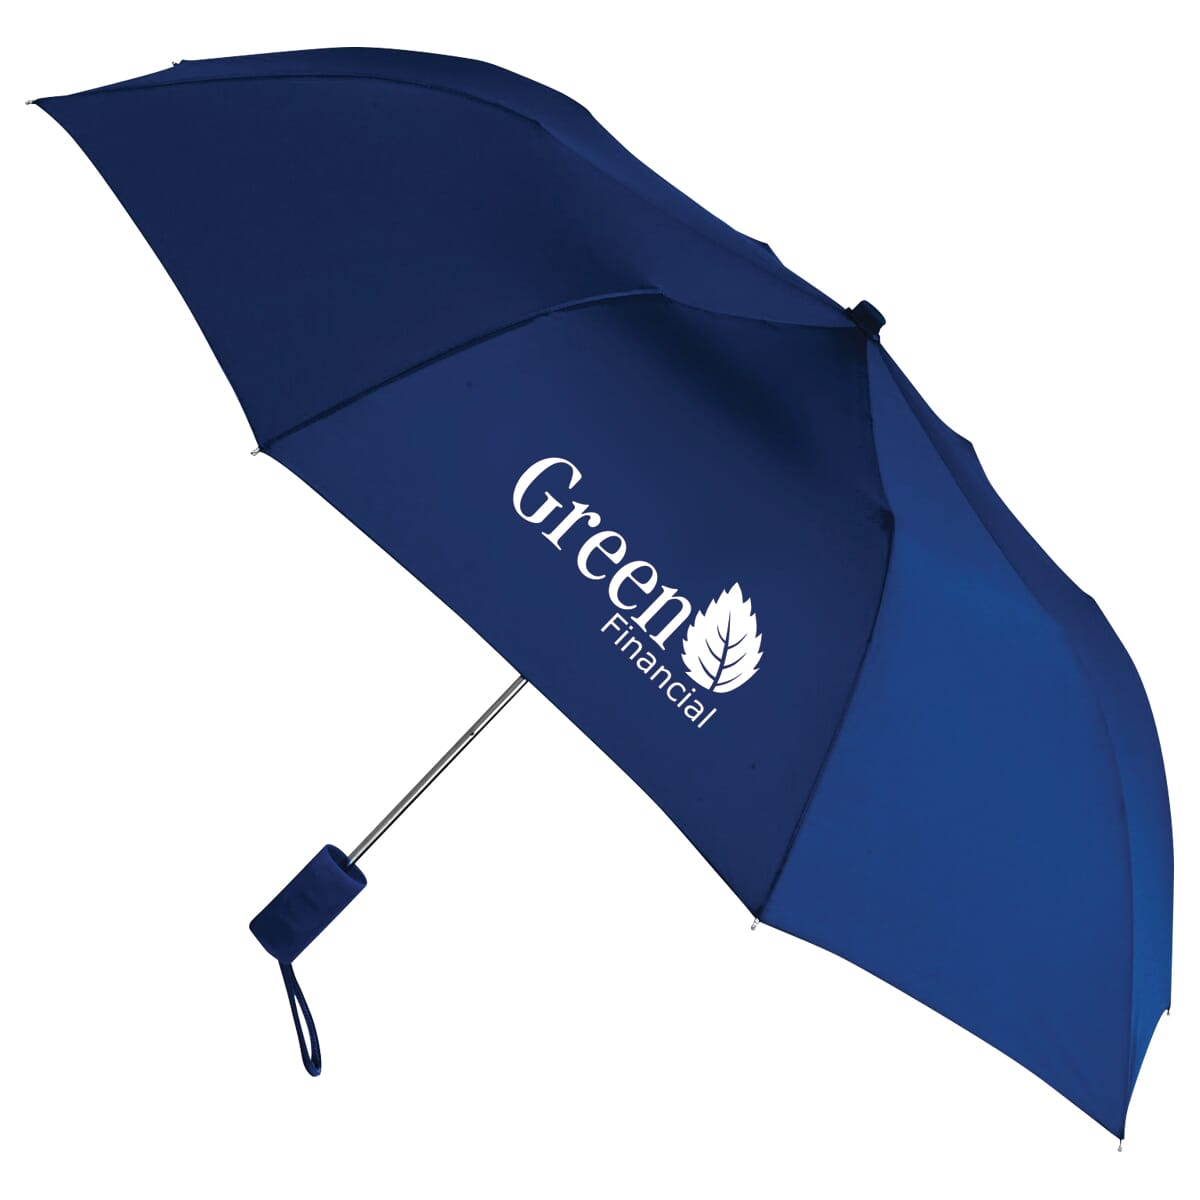 navy blue umbrella with logo